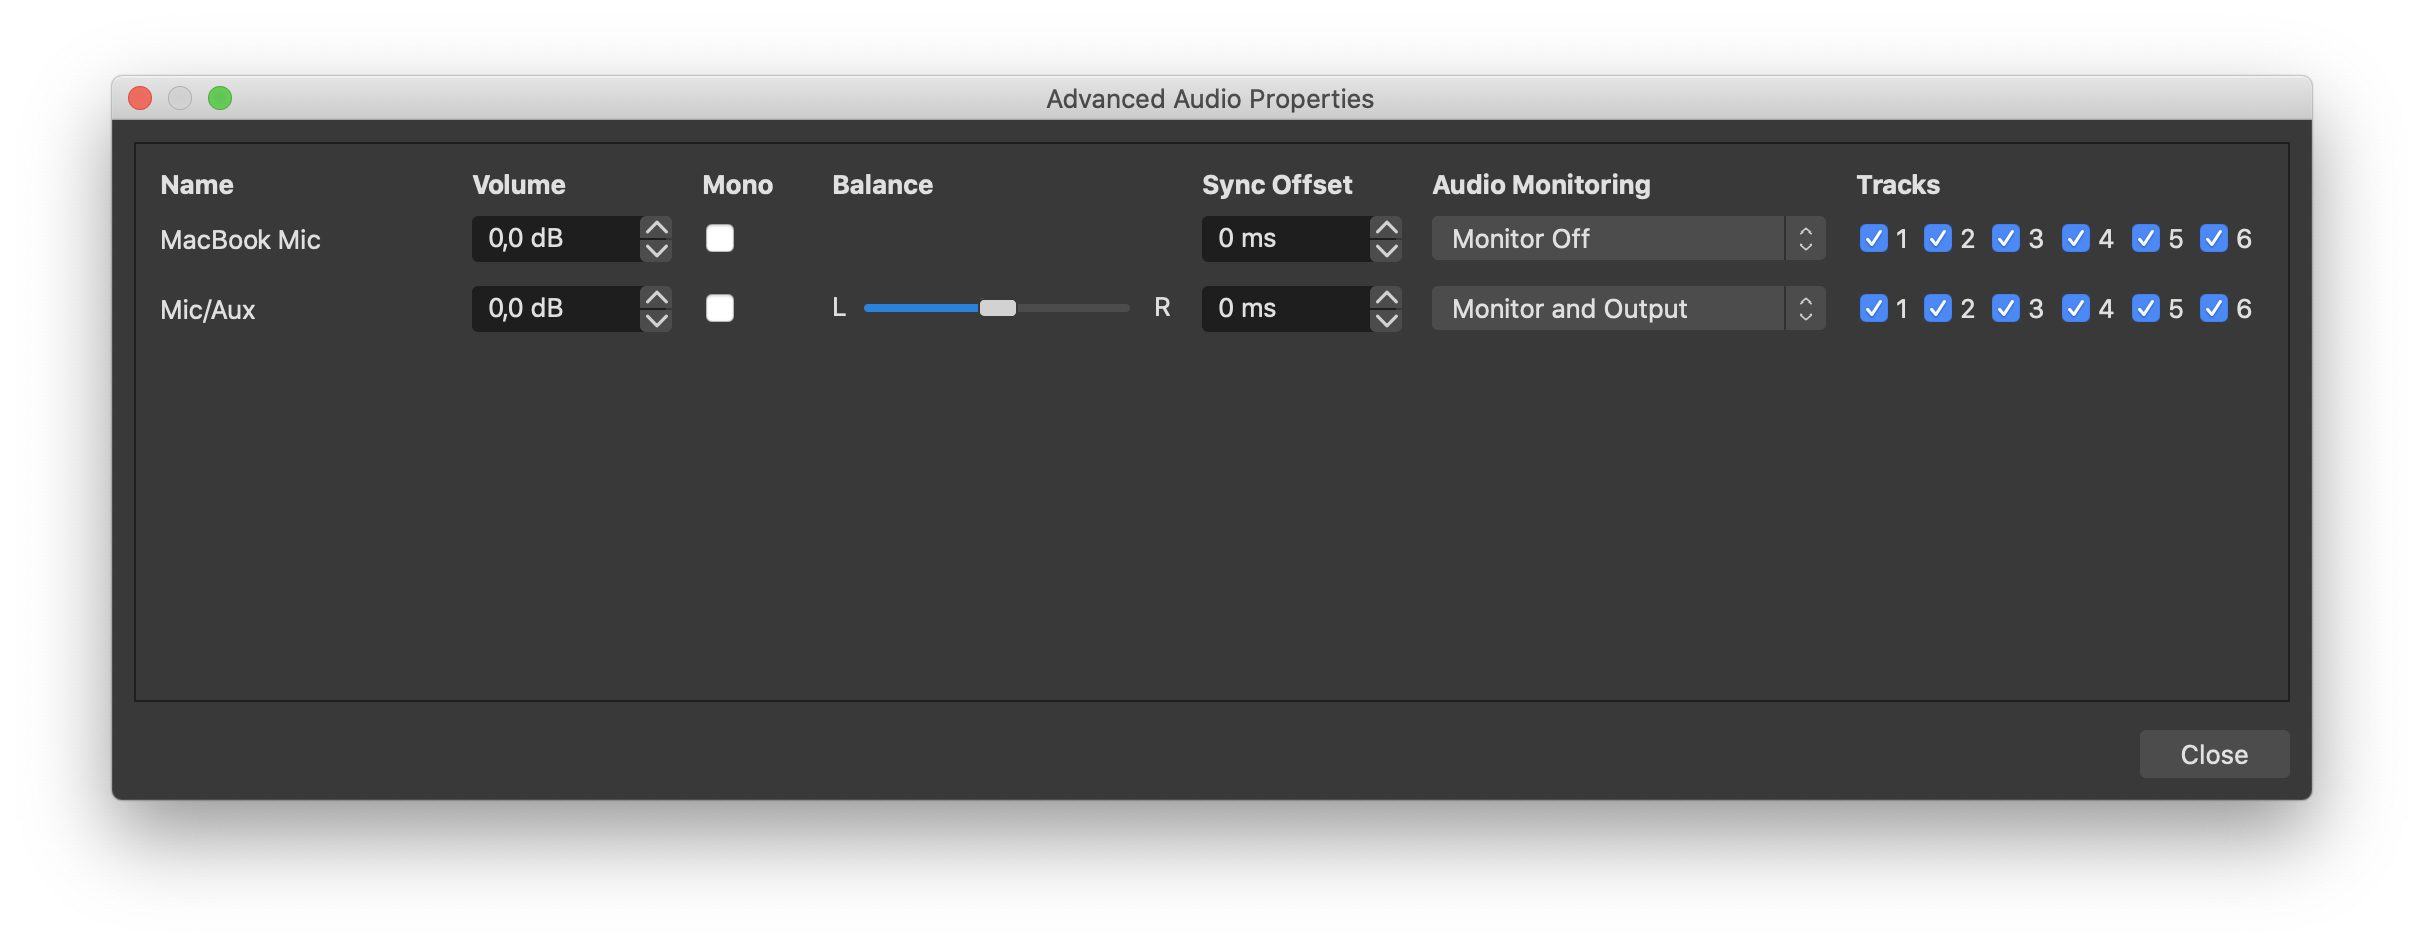 OBS Advanced Audio Properties with enabled Monitoring on the Audio from Max (Mic / Aux - BlackHole)